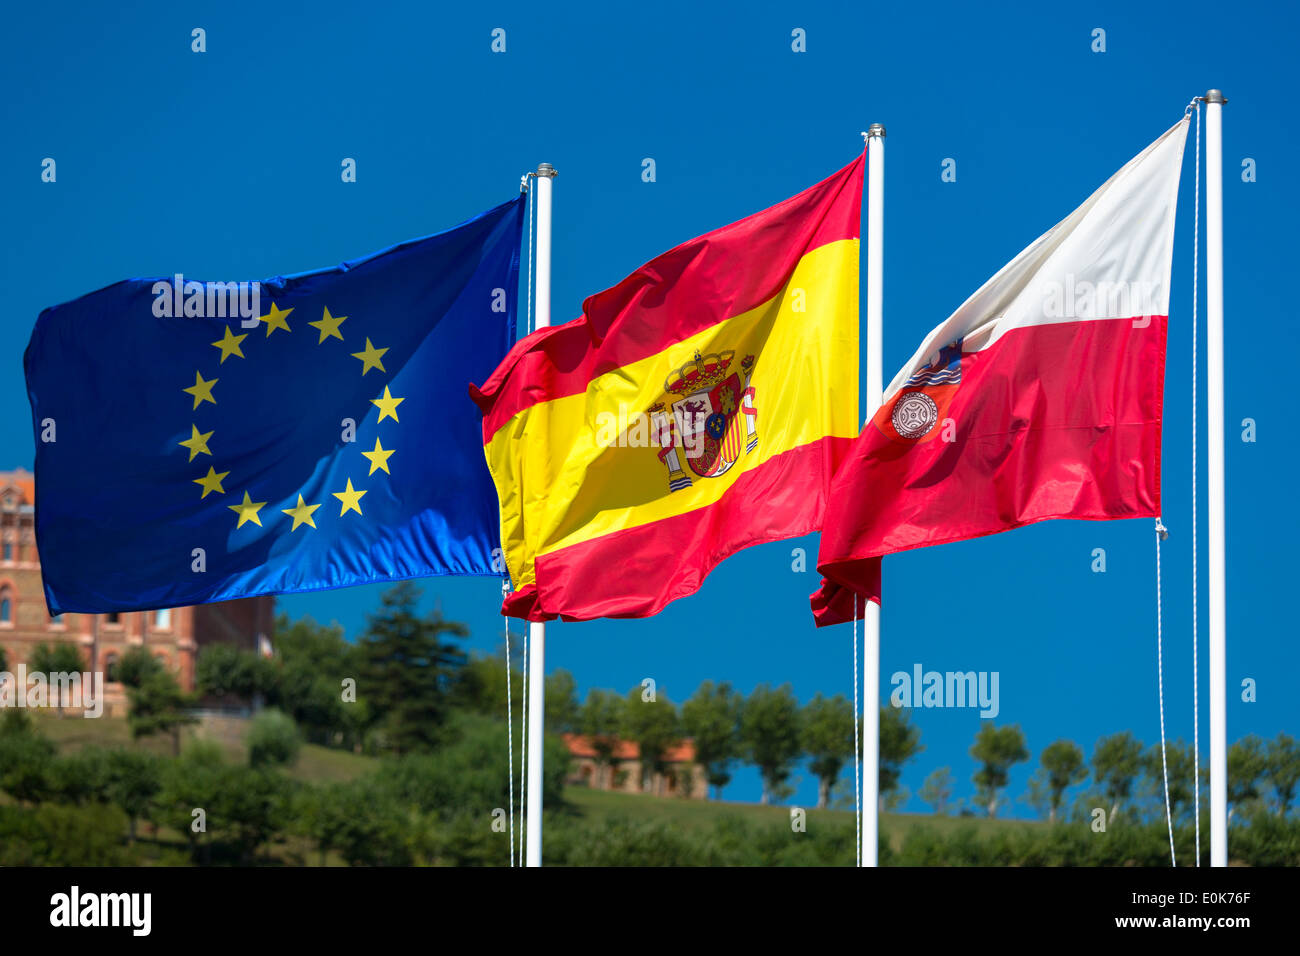 Flags of Spain, European Union and Cantabria in Comillas, Cantabria, Northern Spain Stock Photo